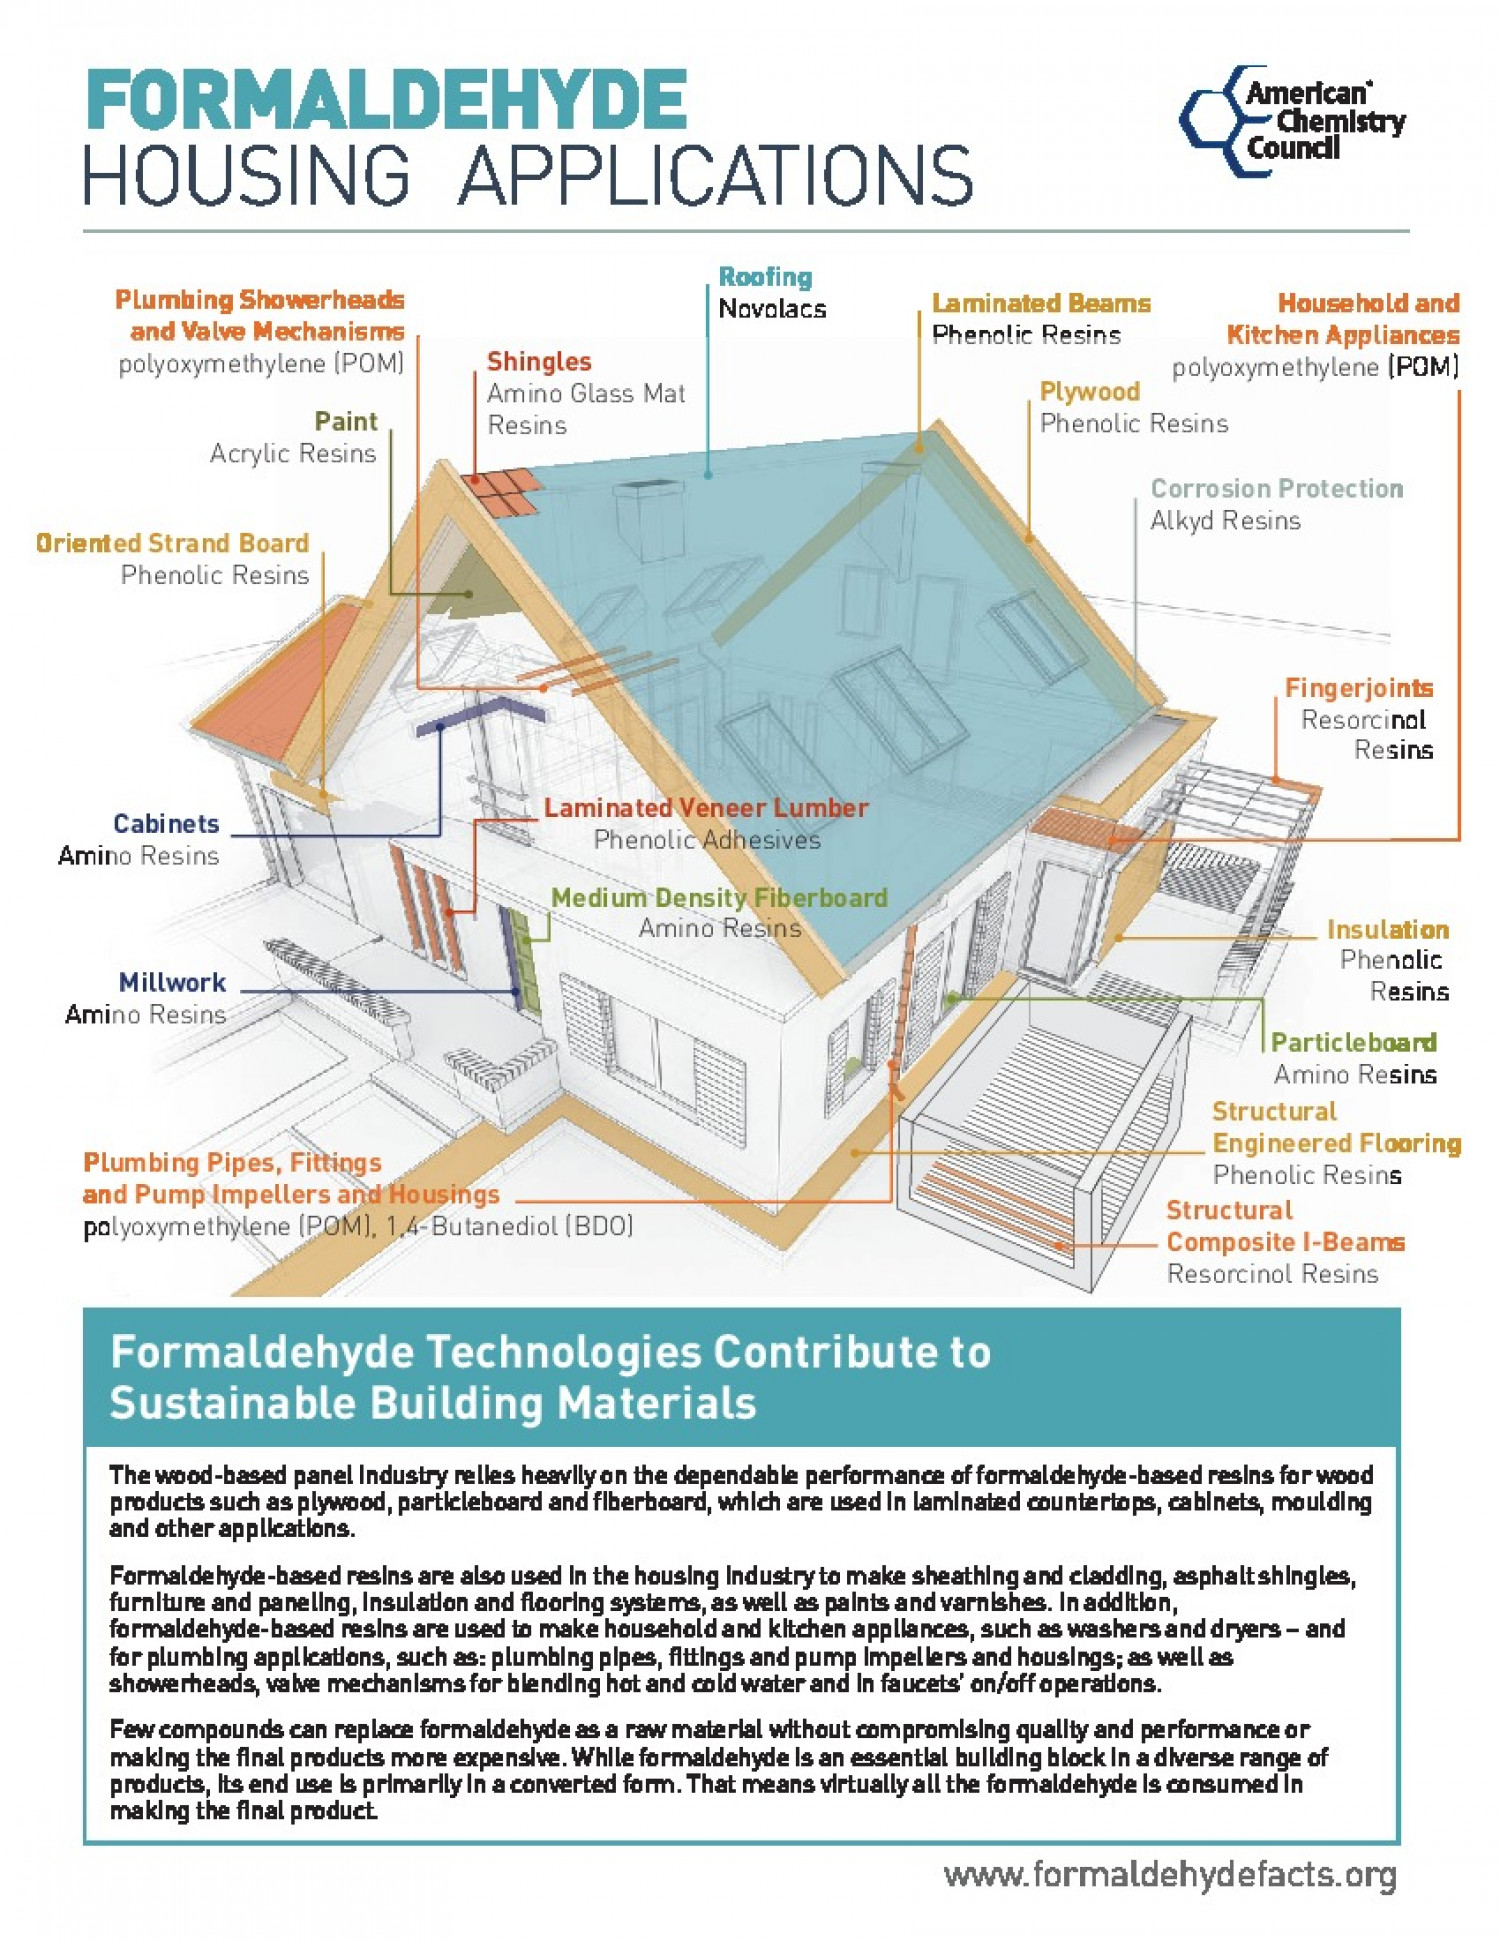 Sustainable Building Products formaldehyde housing applications | visual.ly